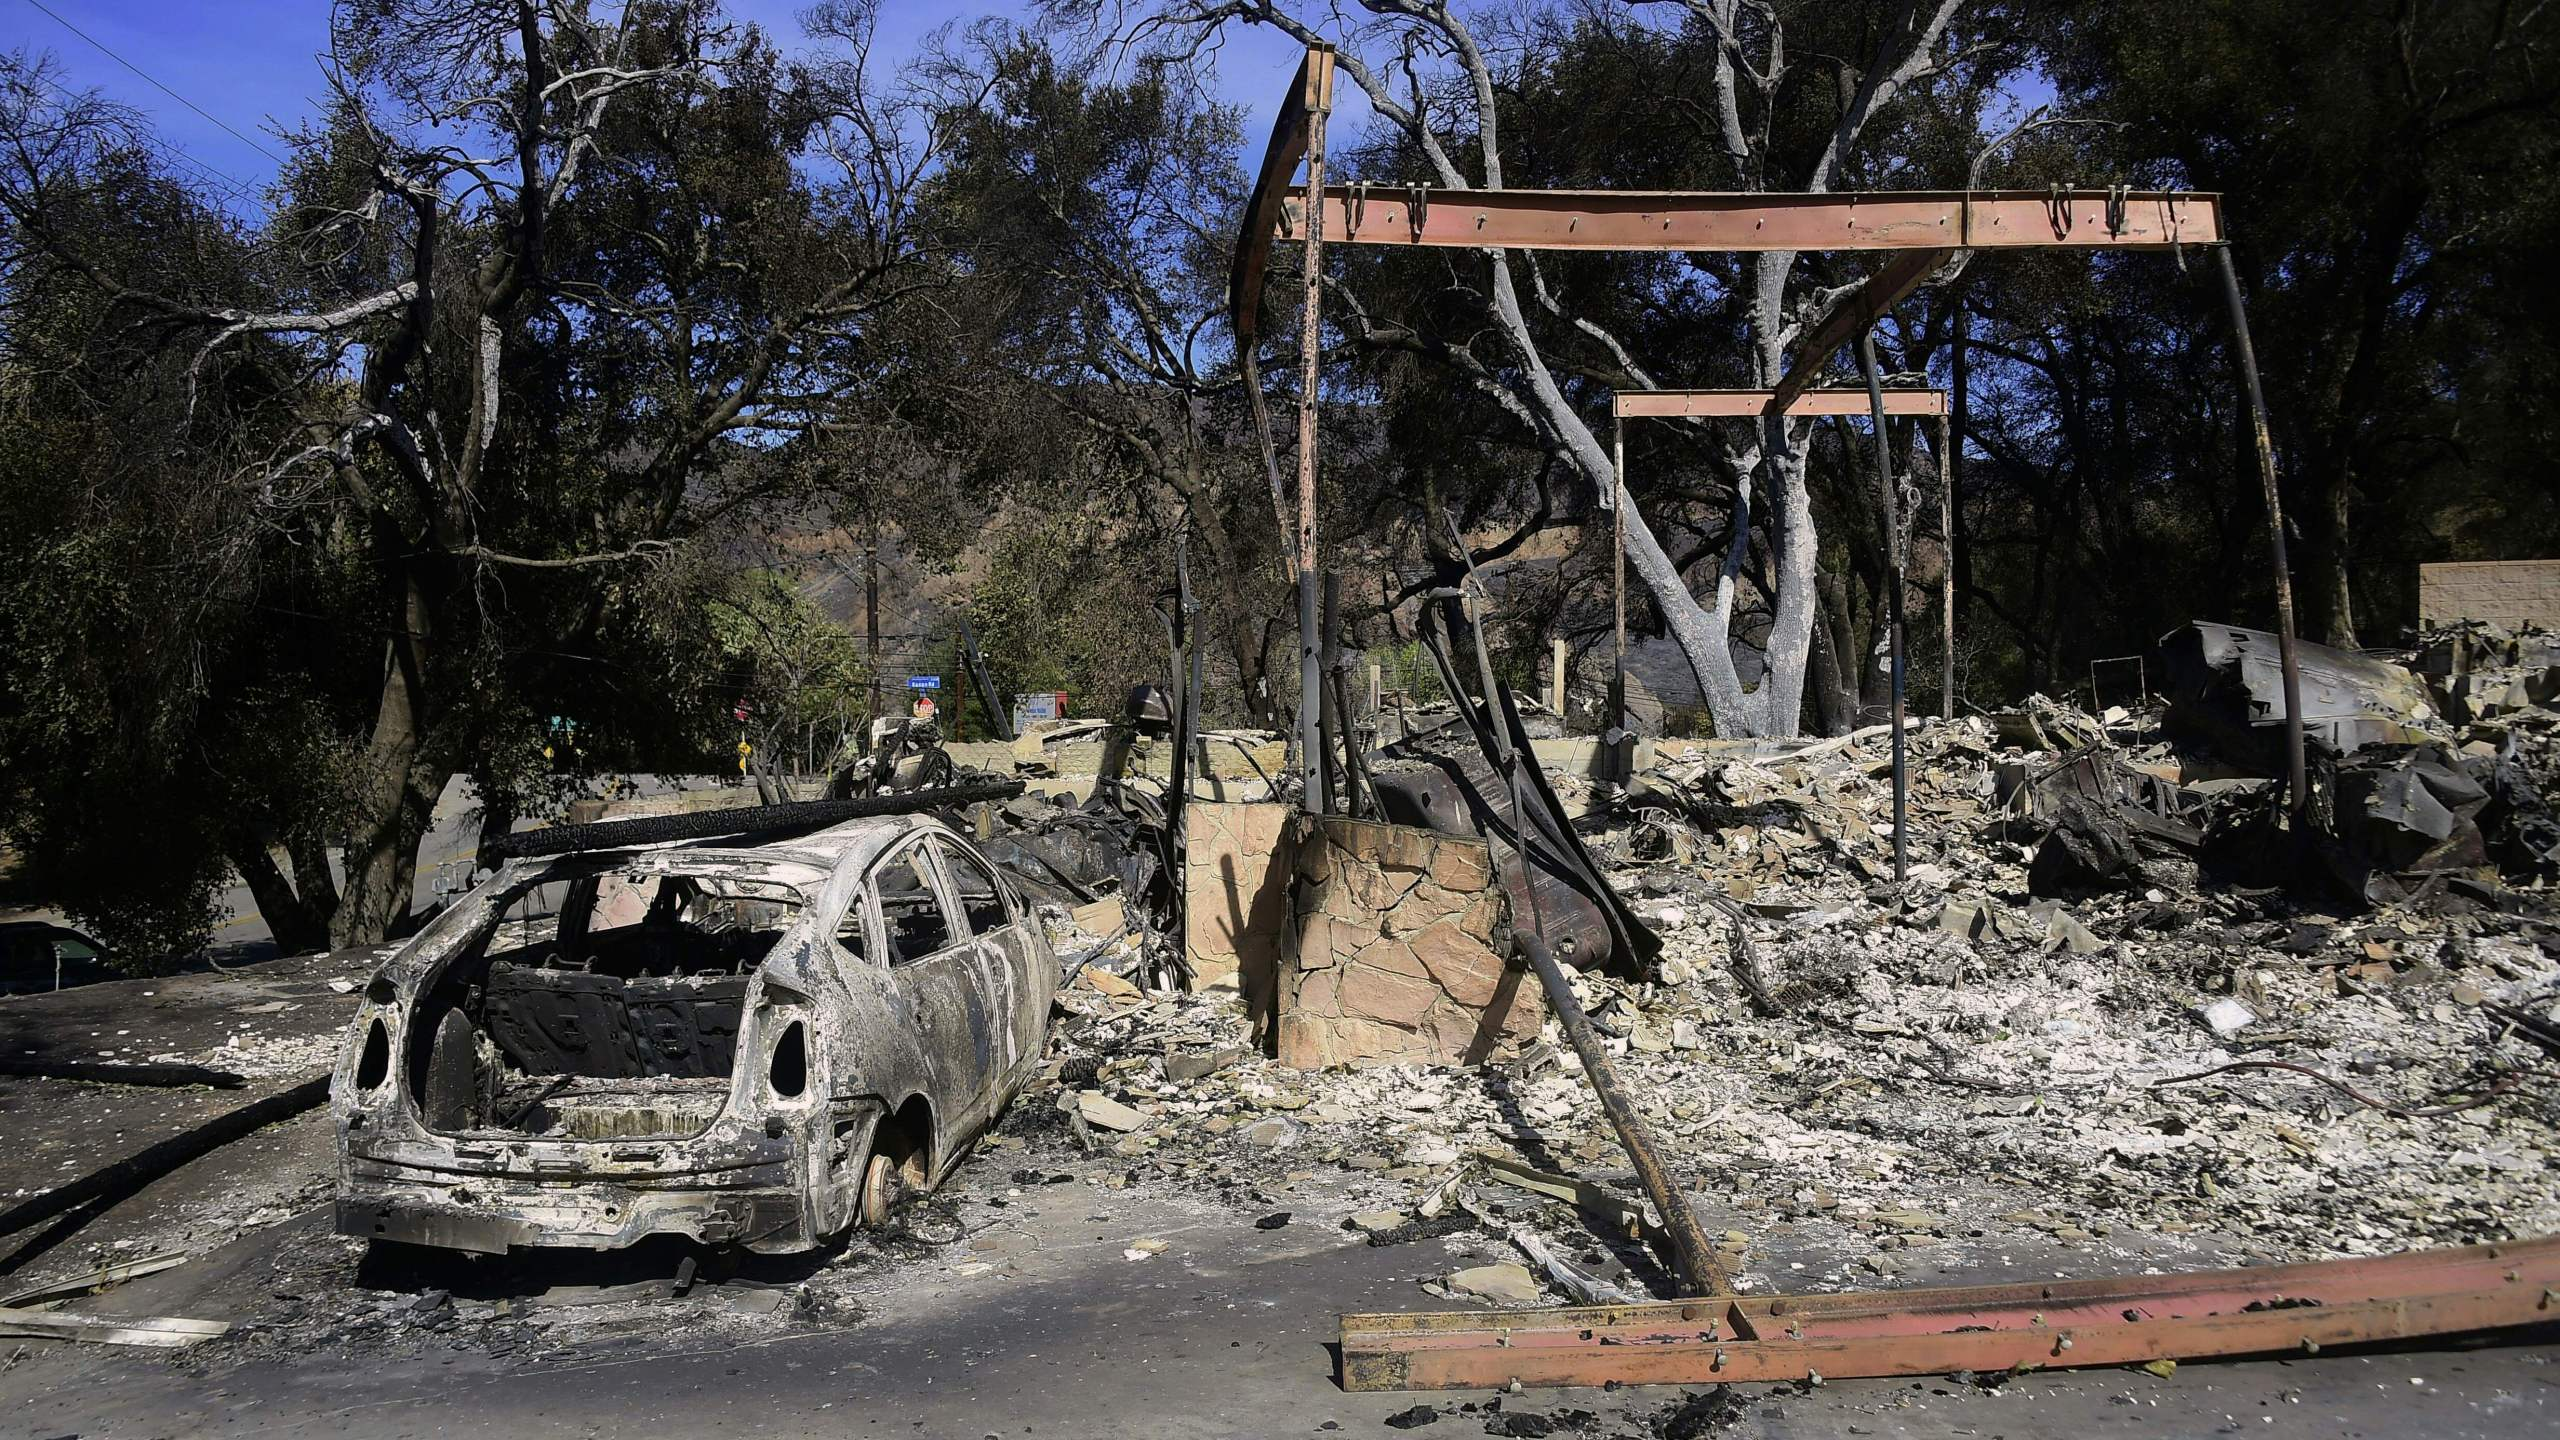 Property destroyed in the Woolsey Fire is seen on Sierra Creek Road in Agoura Hills on Nov. 15, 2018.(Credit: FREDERIC J. BROWN/AFP/Getty Images)